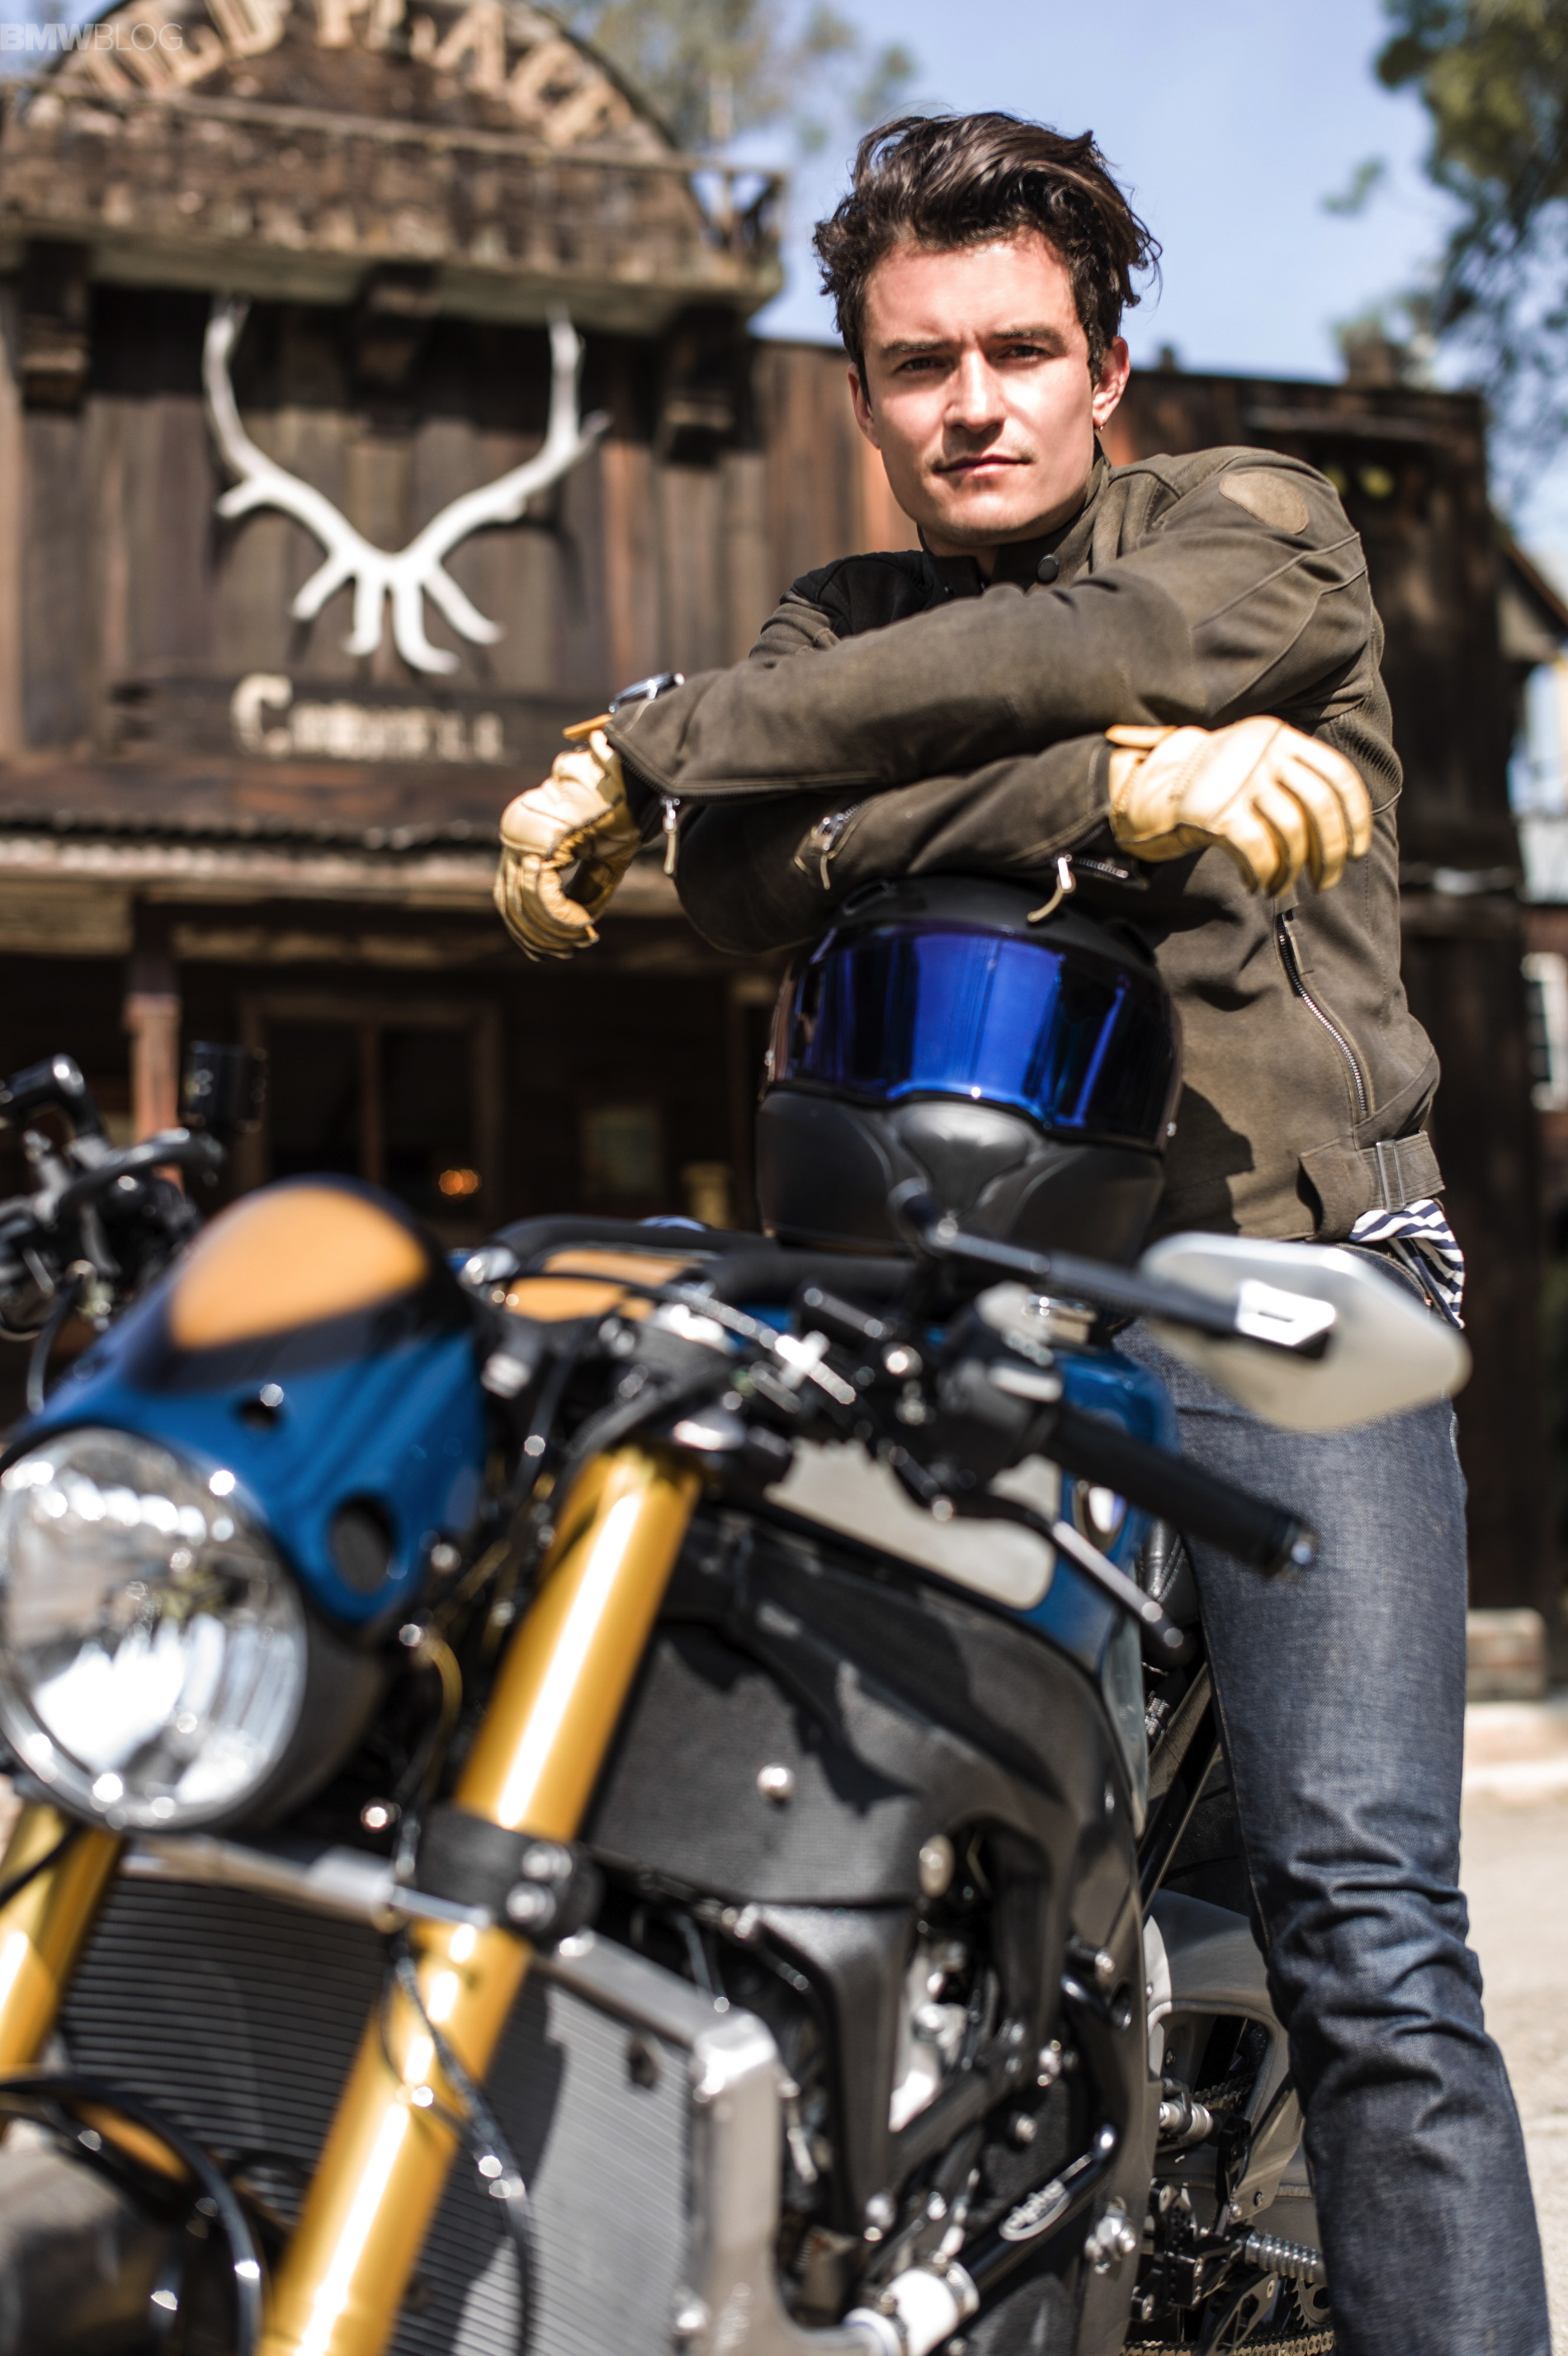 Bmw Motorrad And Orlando Bloom Present The Bmw S 1000 R Custom